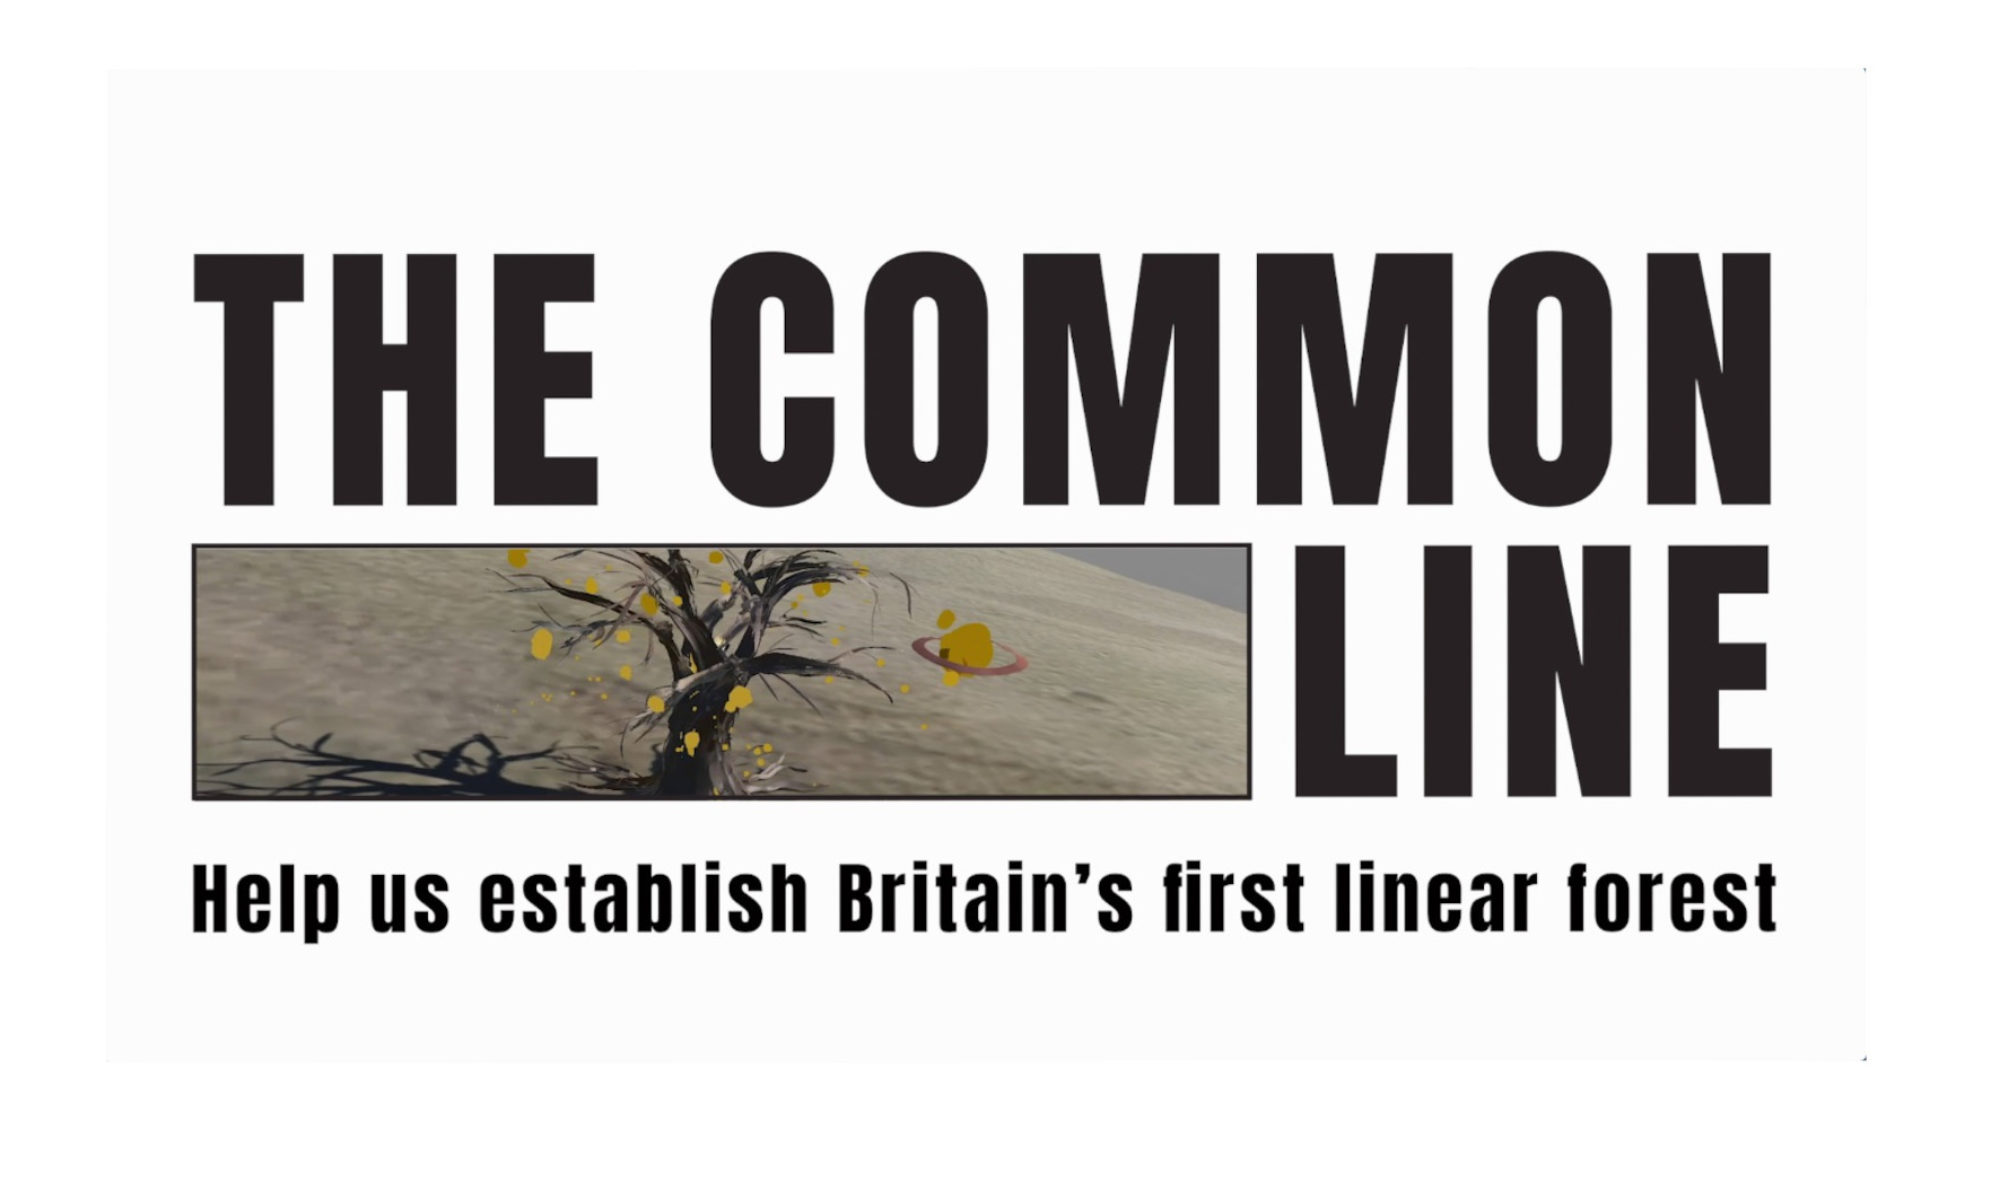 The Common Line